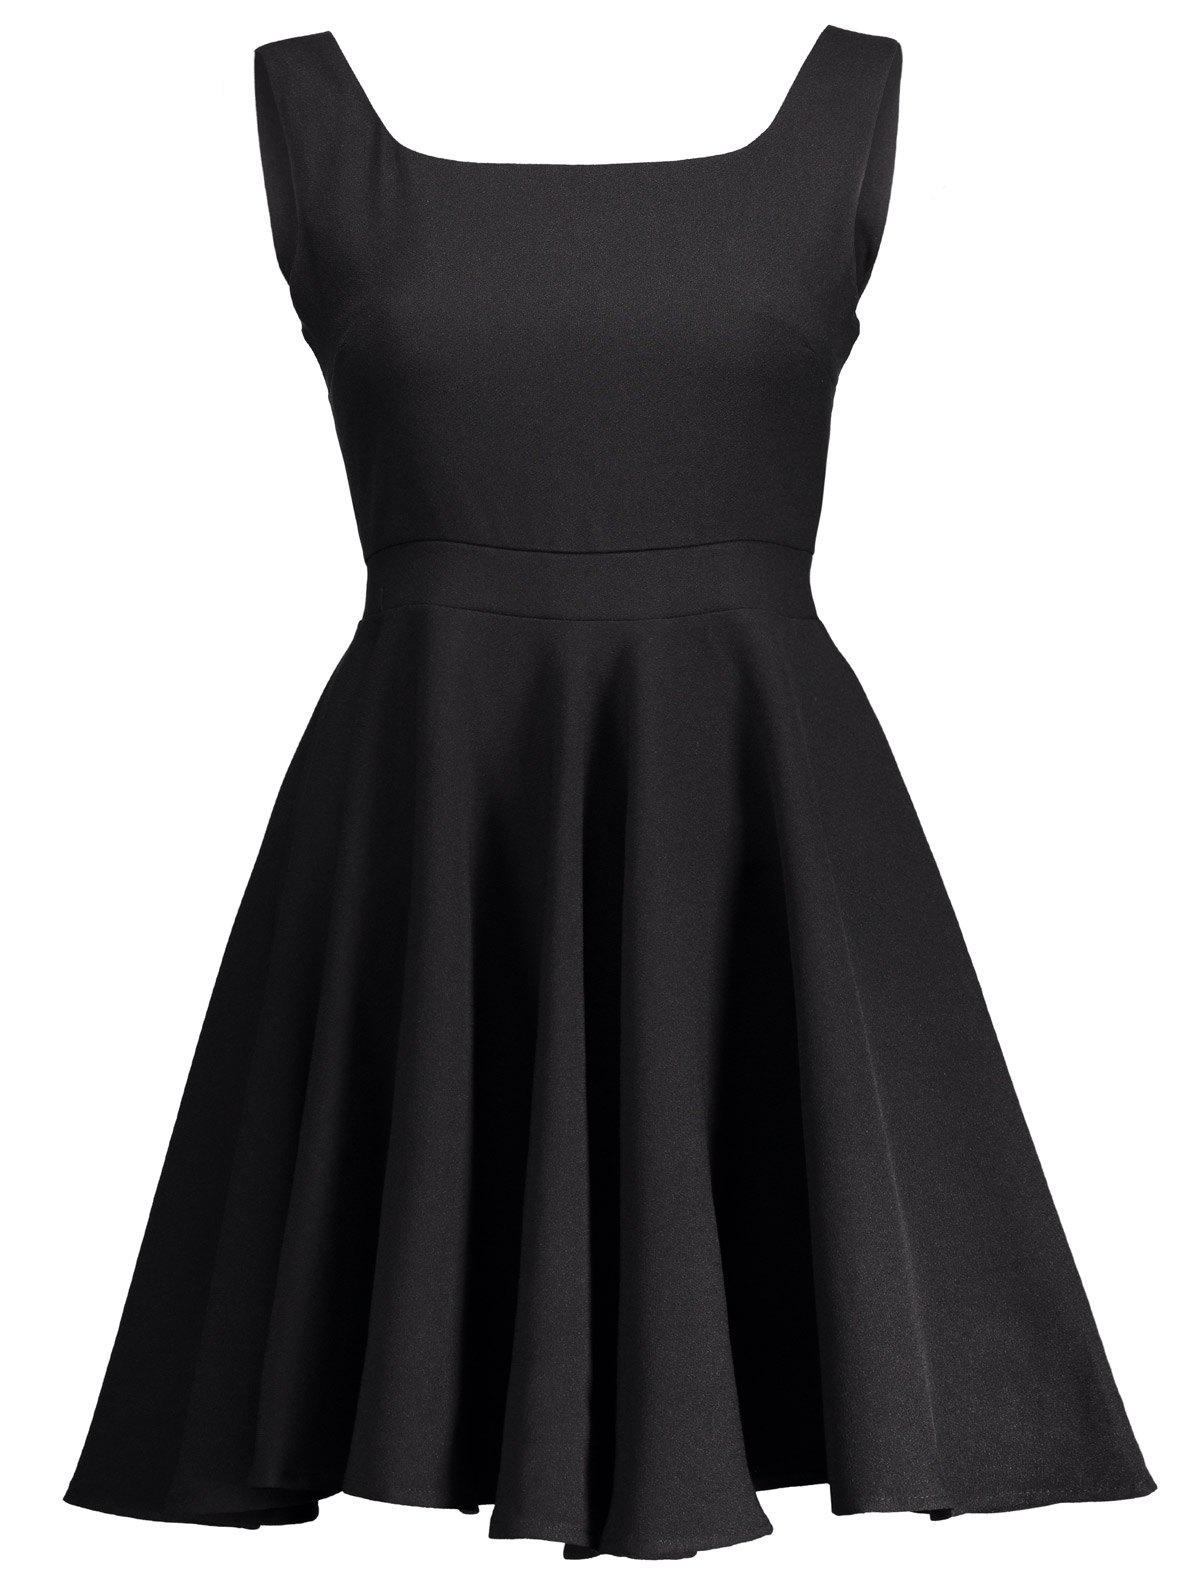 Square Neck High Waist Fit and Flare Dress - BLACK 2XL